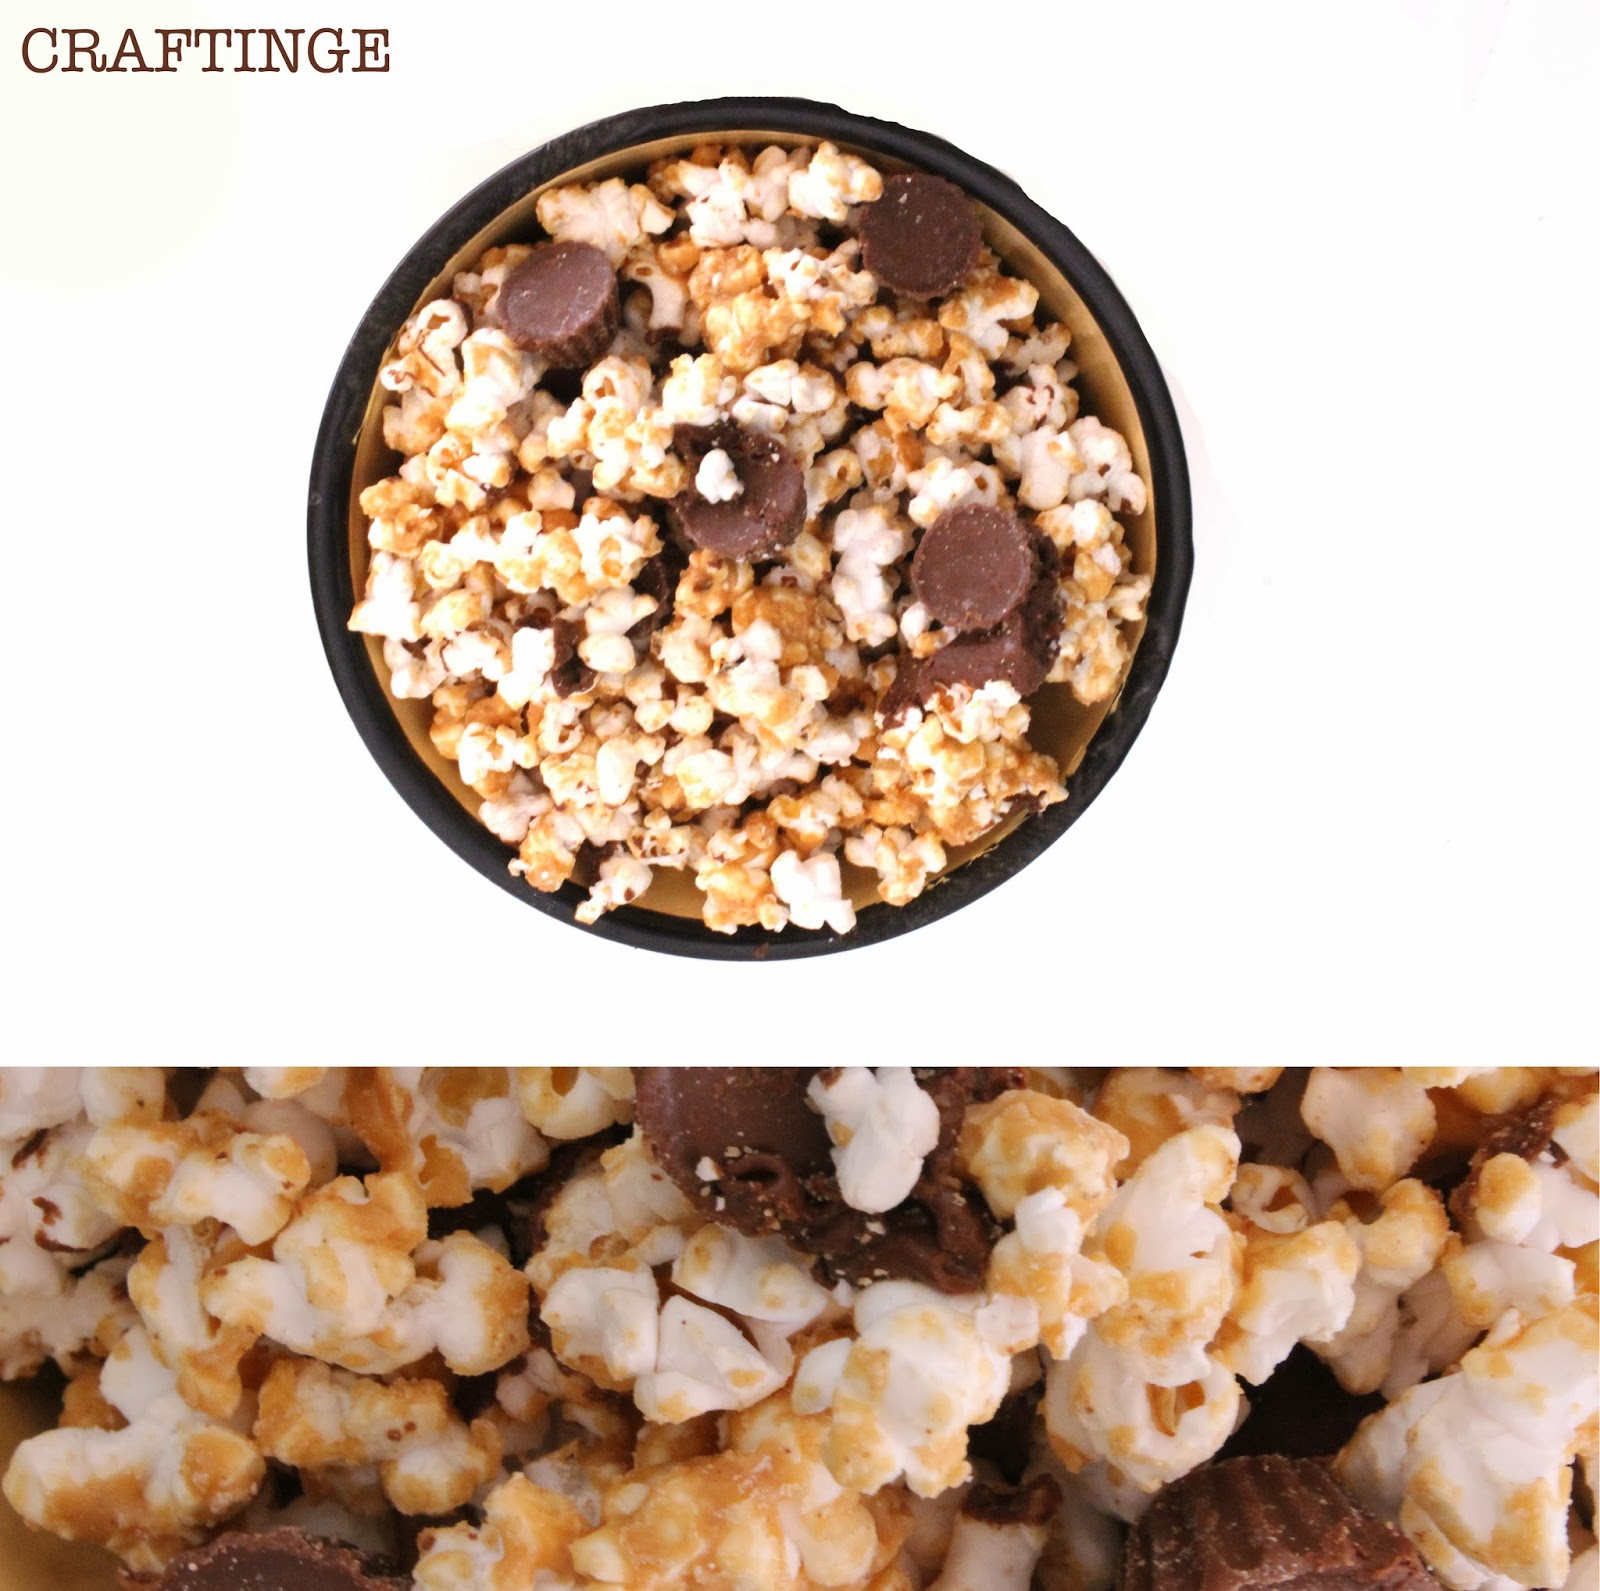 Reese's Peanut Butter Cup Popcorn - Craftinge{E}